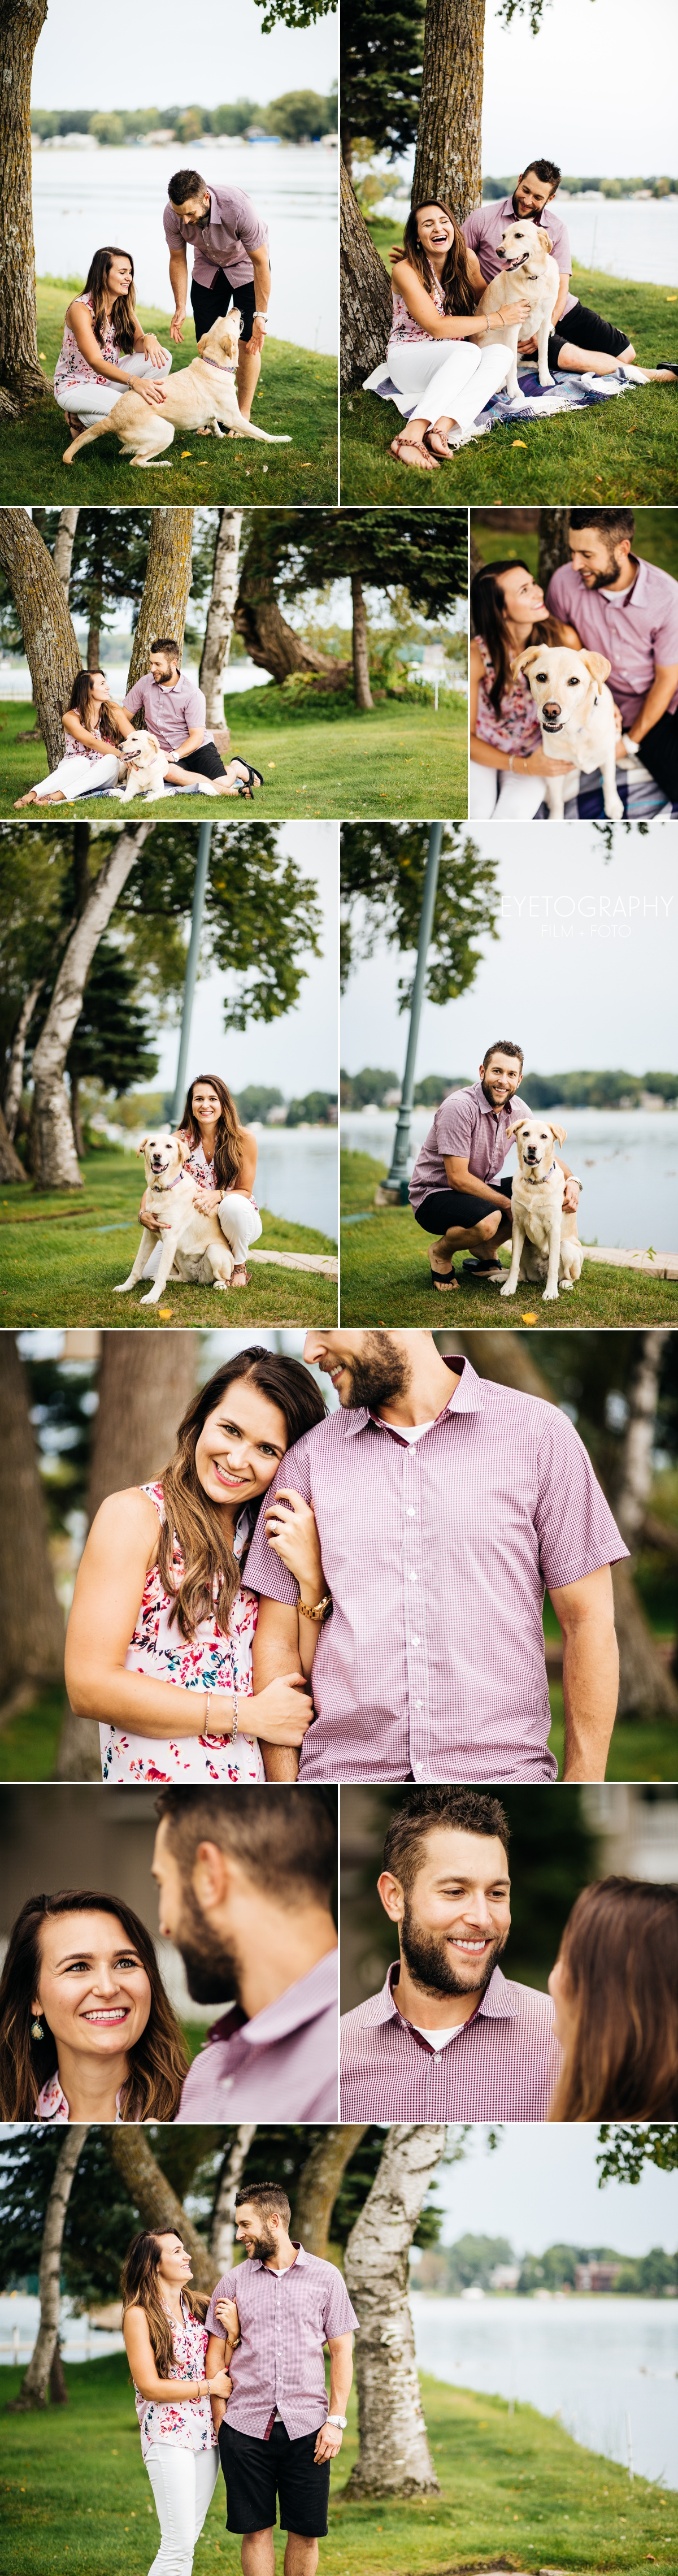 Engagement Session on a Lake | Andrea + Chris | Eyetography Film + Foto Minneapolis, MN